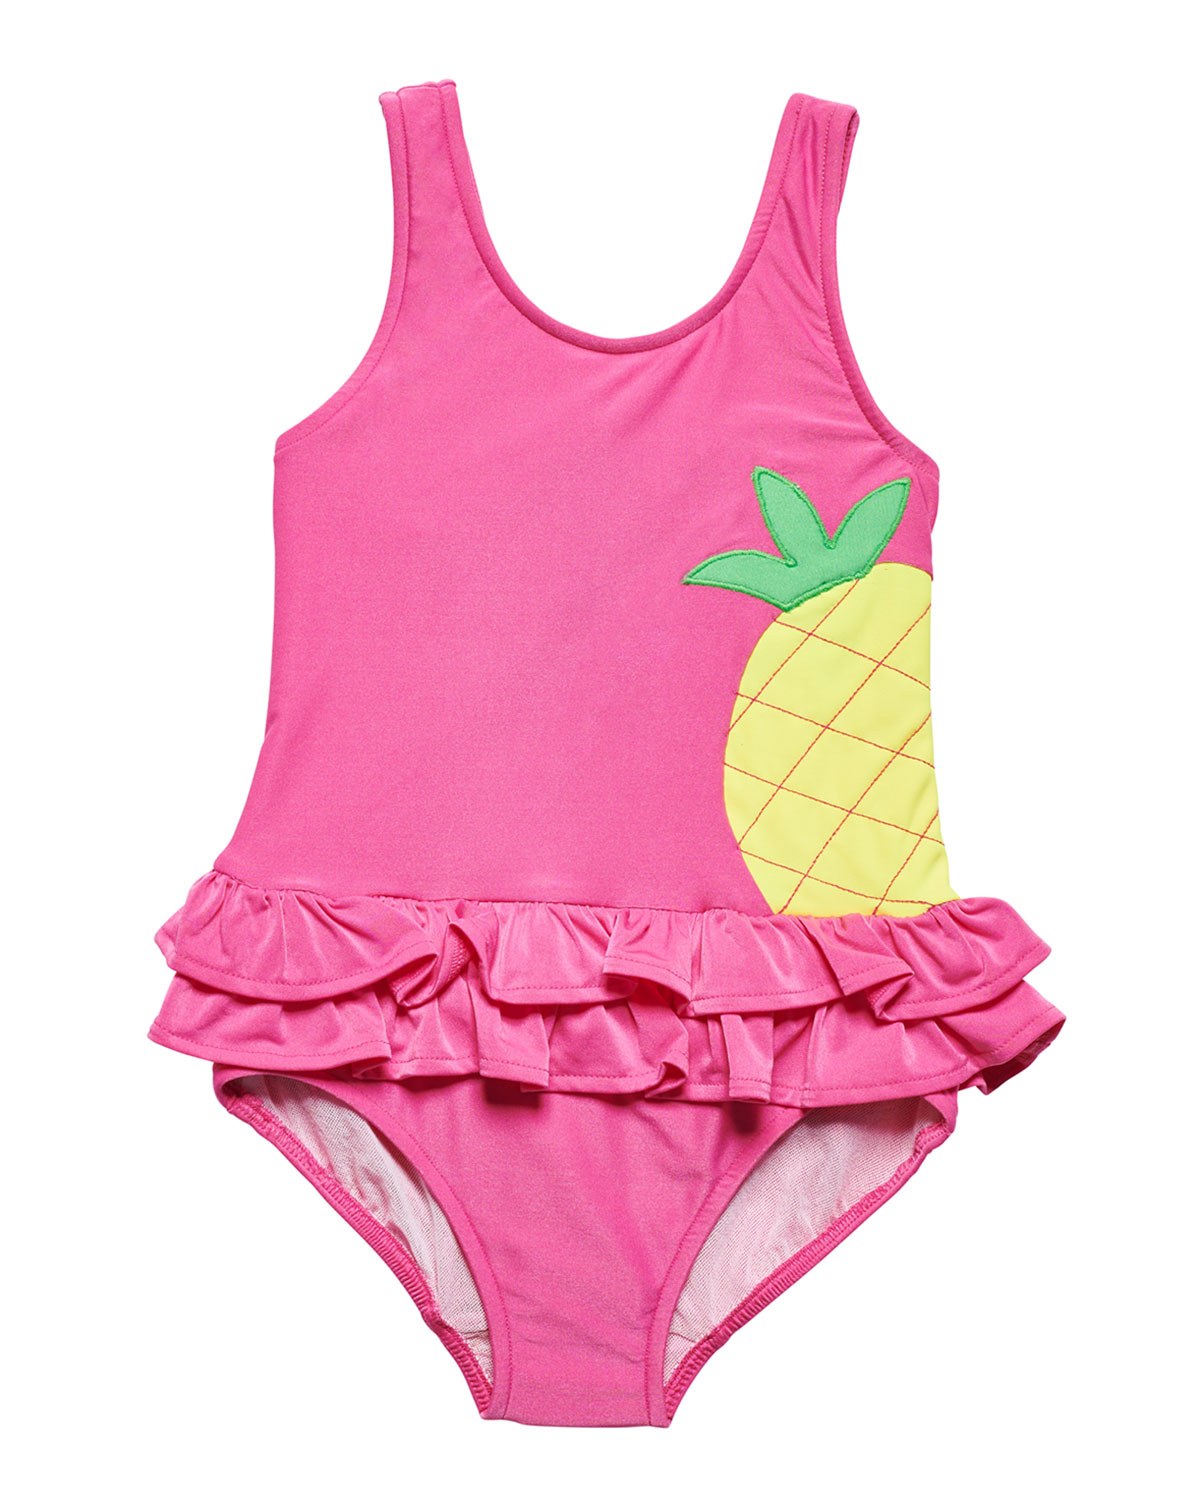 FLORENCE EISEMAN One-Piece Pineapple Swimsuit, Size 2-6X in Pink